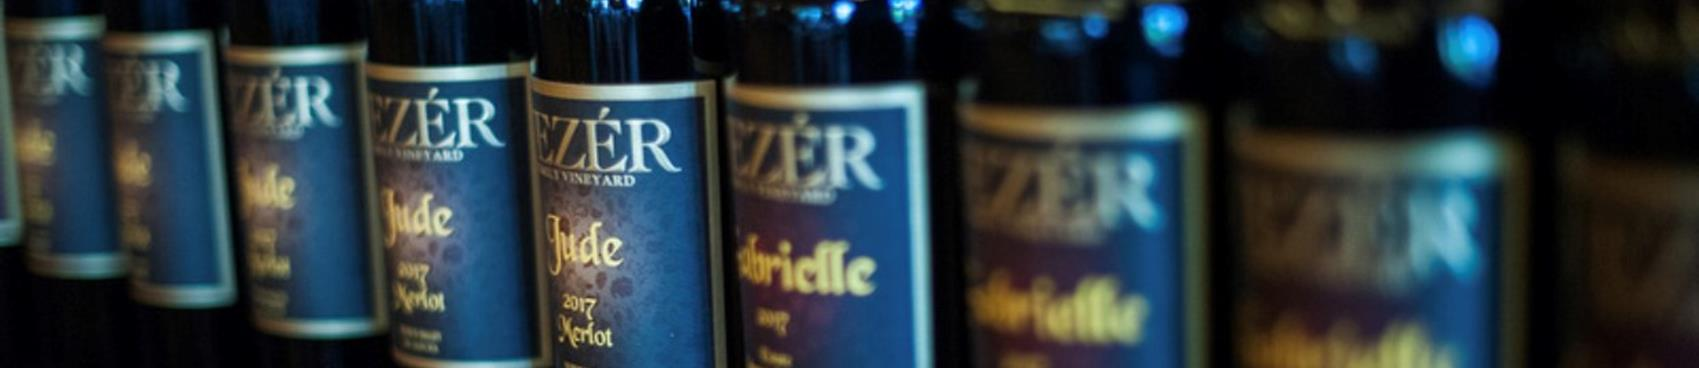 Purchase Tickets to Chieftain Gala Wine Tasting at Vezer Family Vineyard on CellarPass